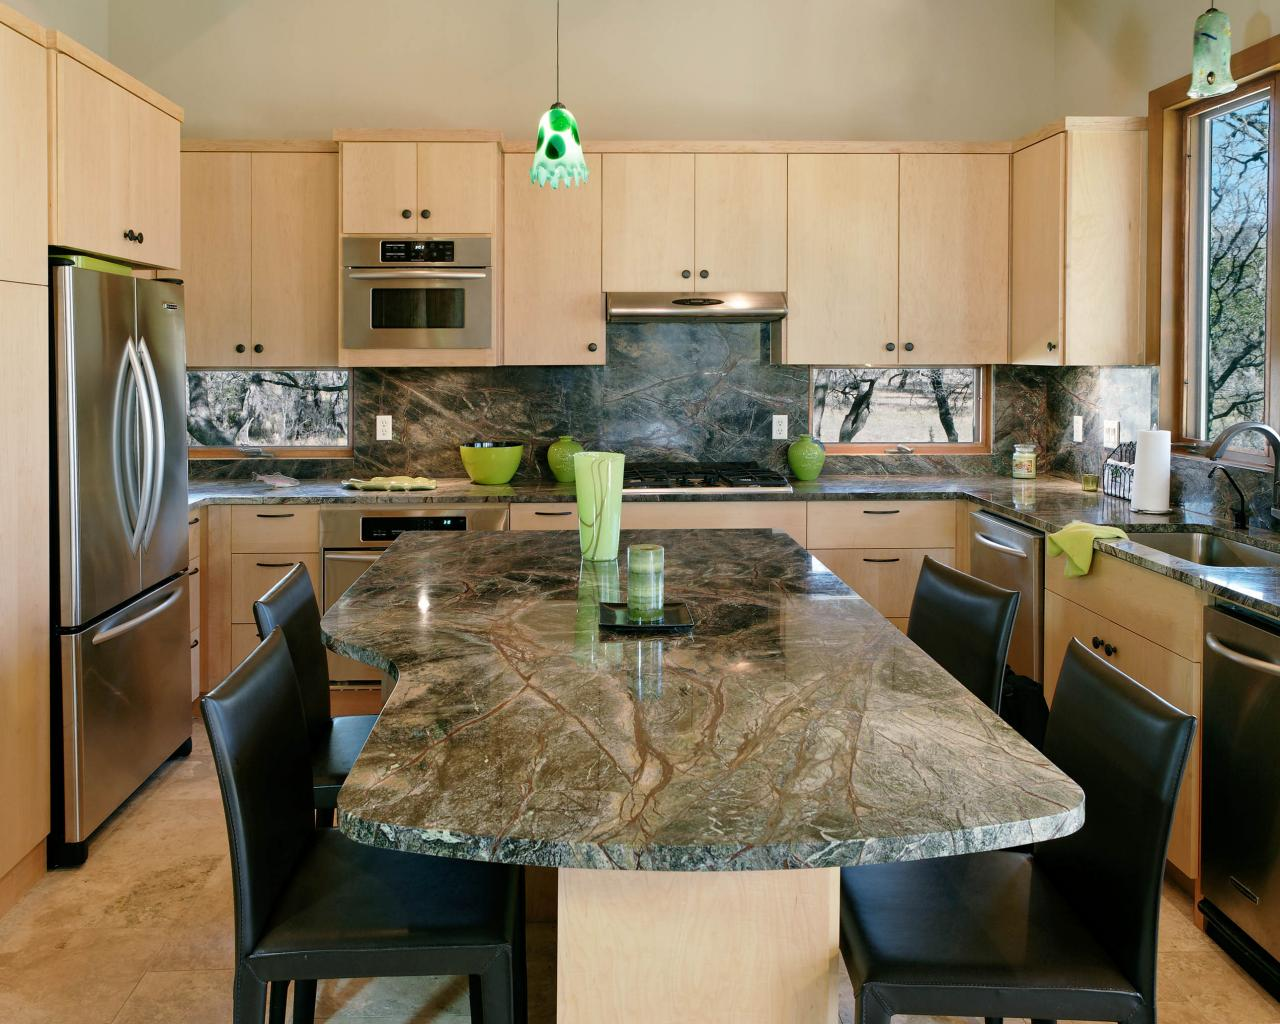 DP_Artisan-Collection-mixed-color-contemporary-kitchen-green-granite_h.jpg.rend.hgtvcom.1280.1024